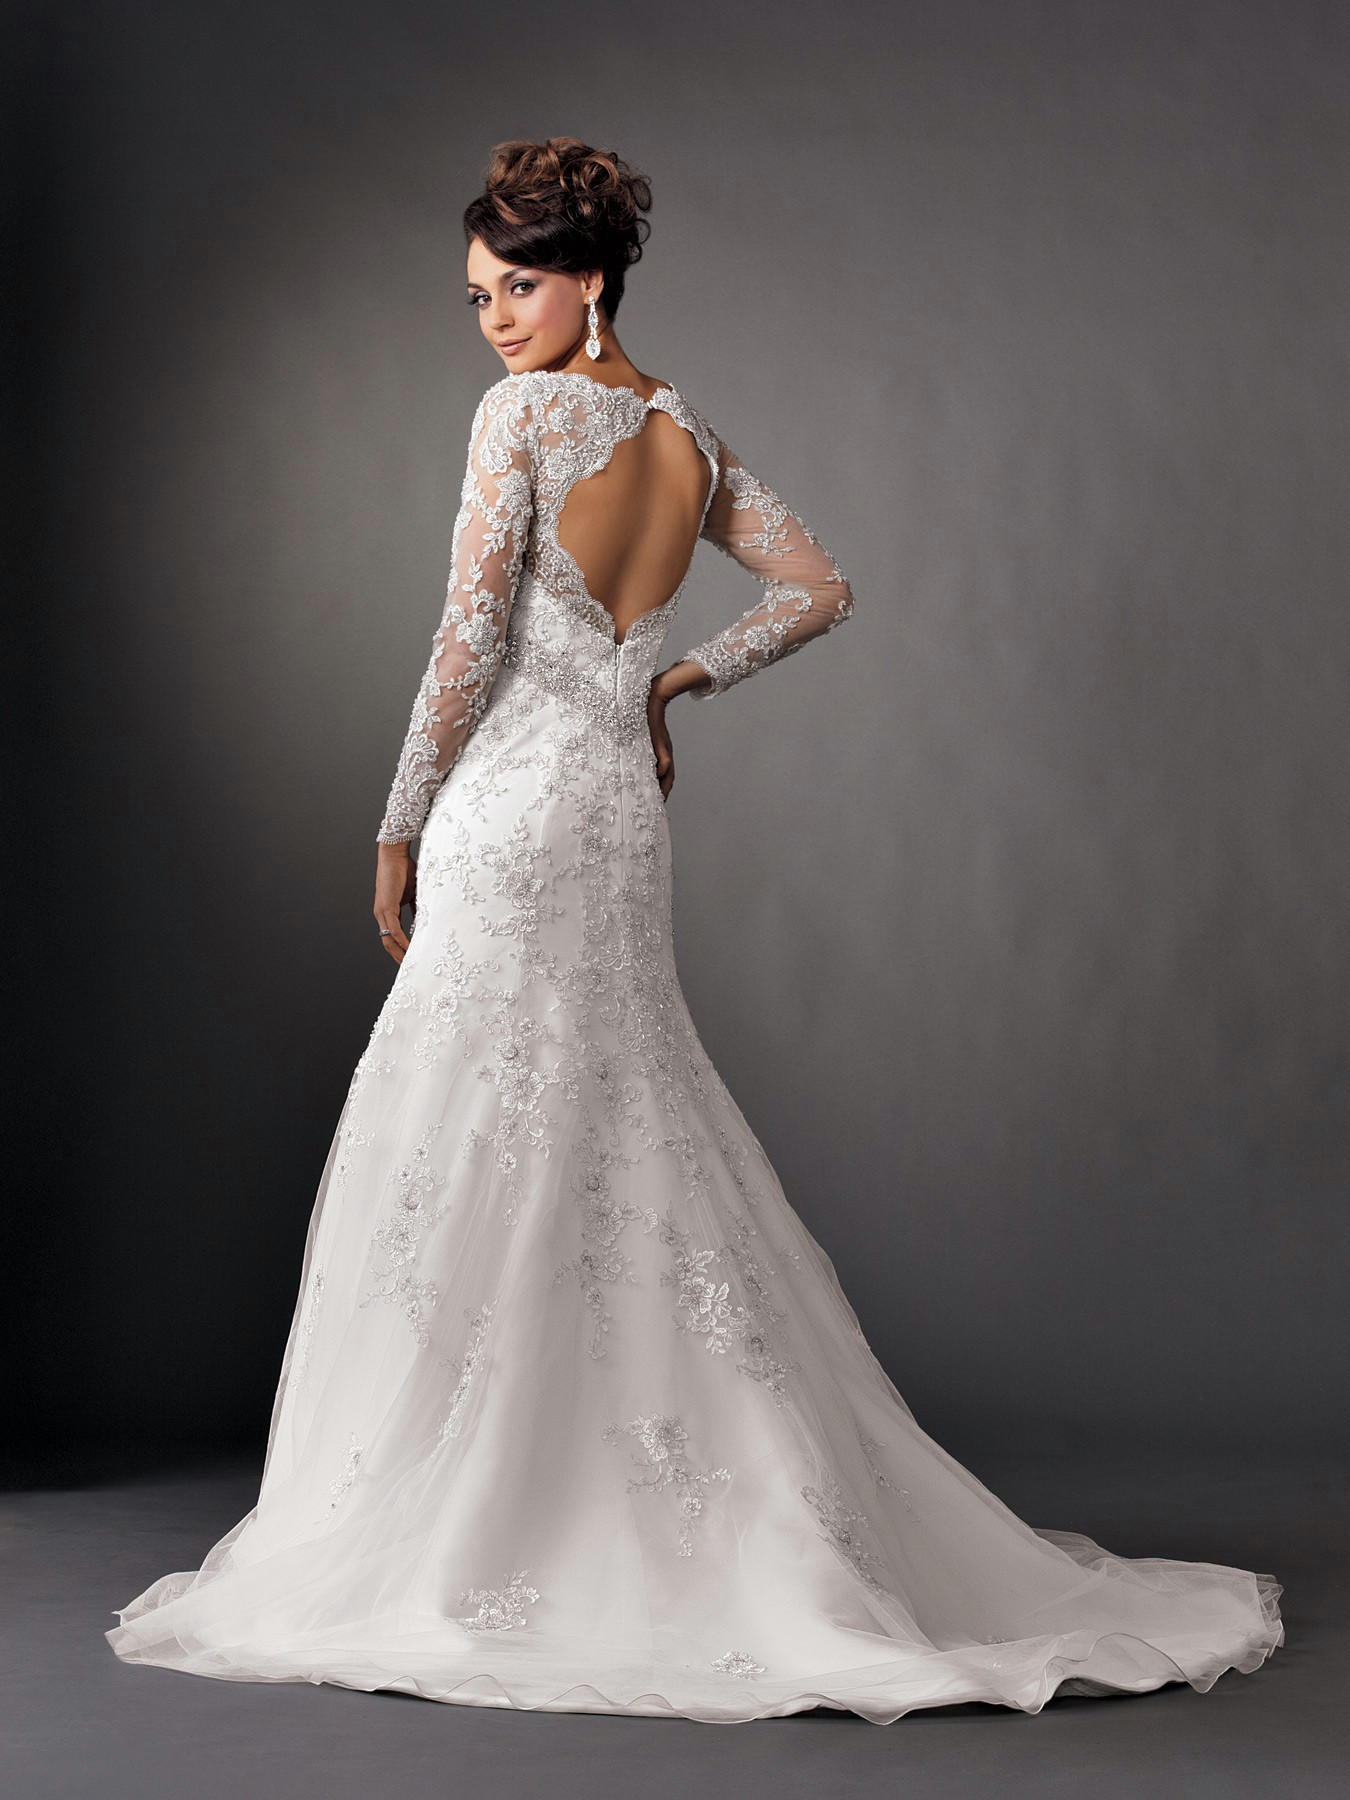 2014 2015 wedding dress trends lace sleeves dipped for Long wedding dresses with sleeves